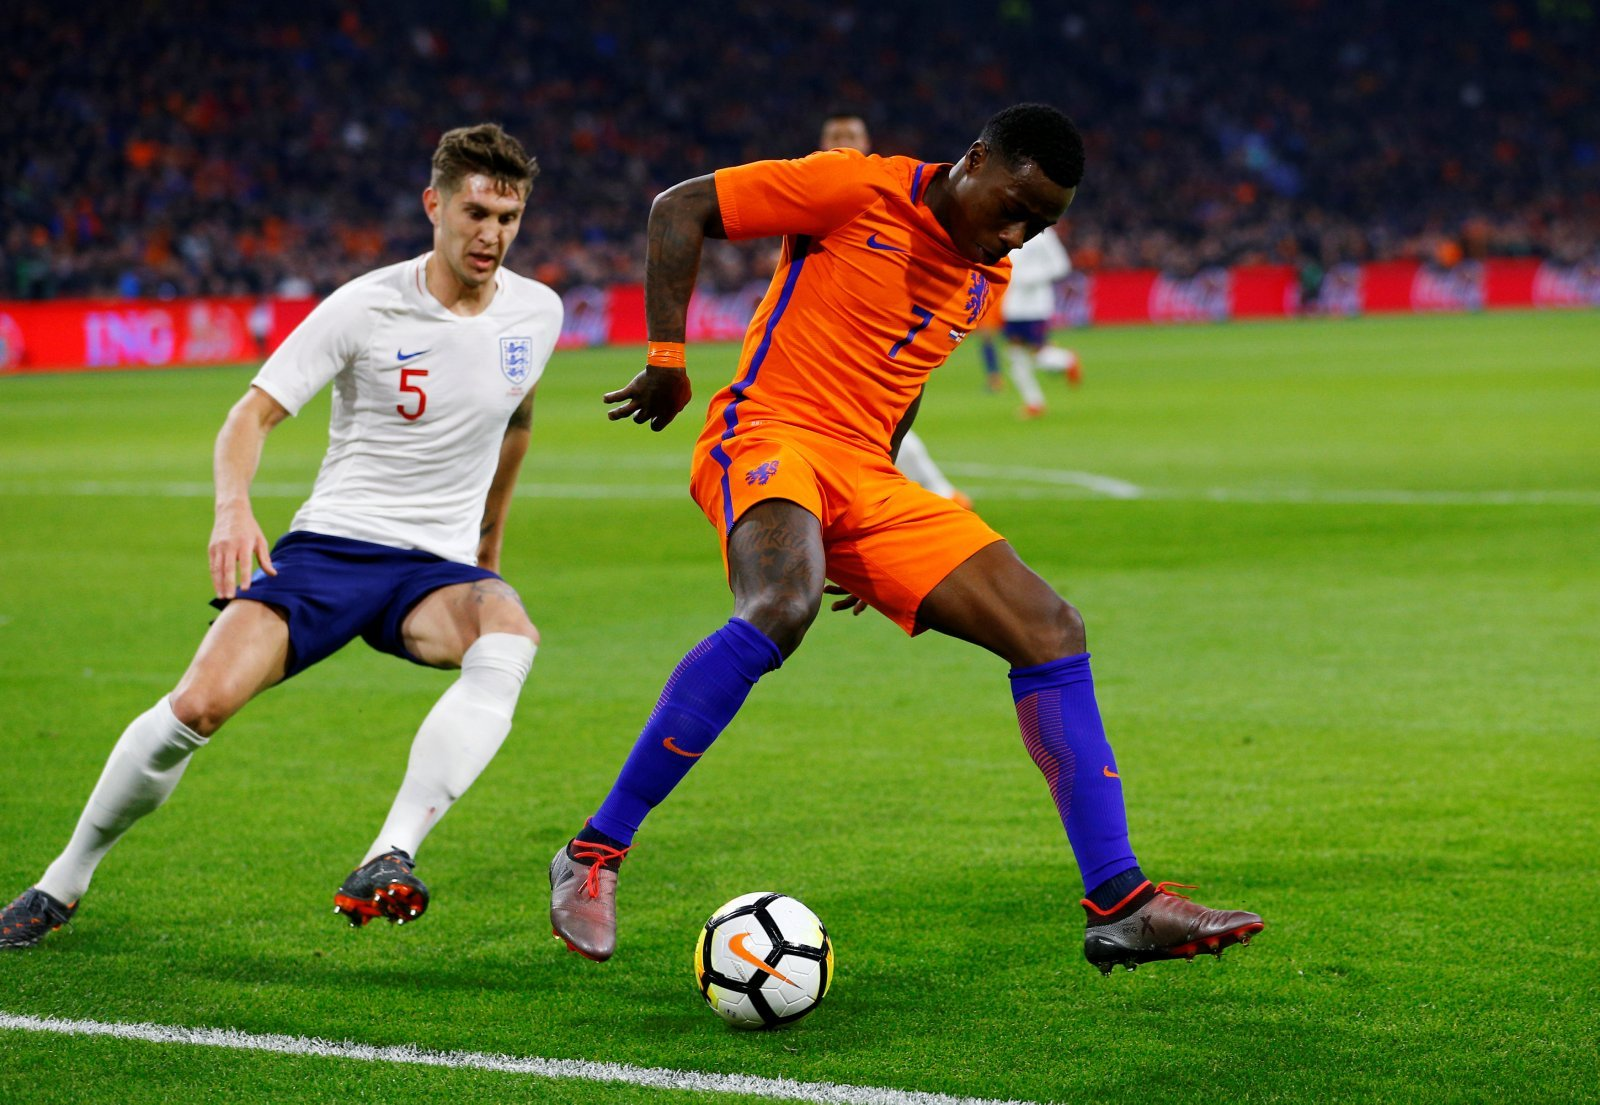 Tottenham would have been wise to land Quincy Promes in £18m deal